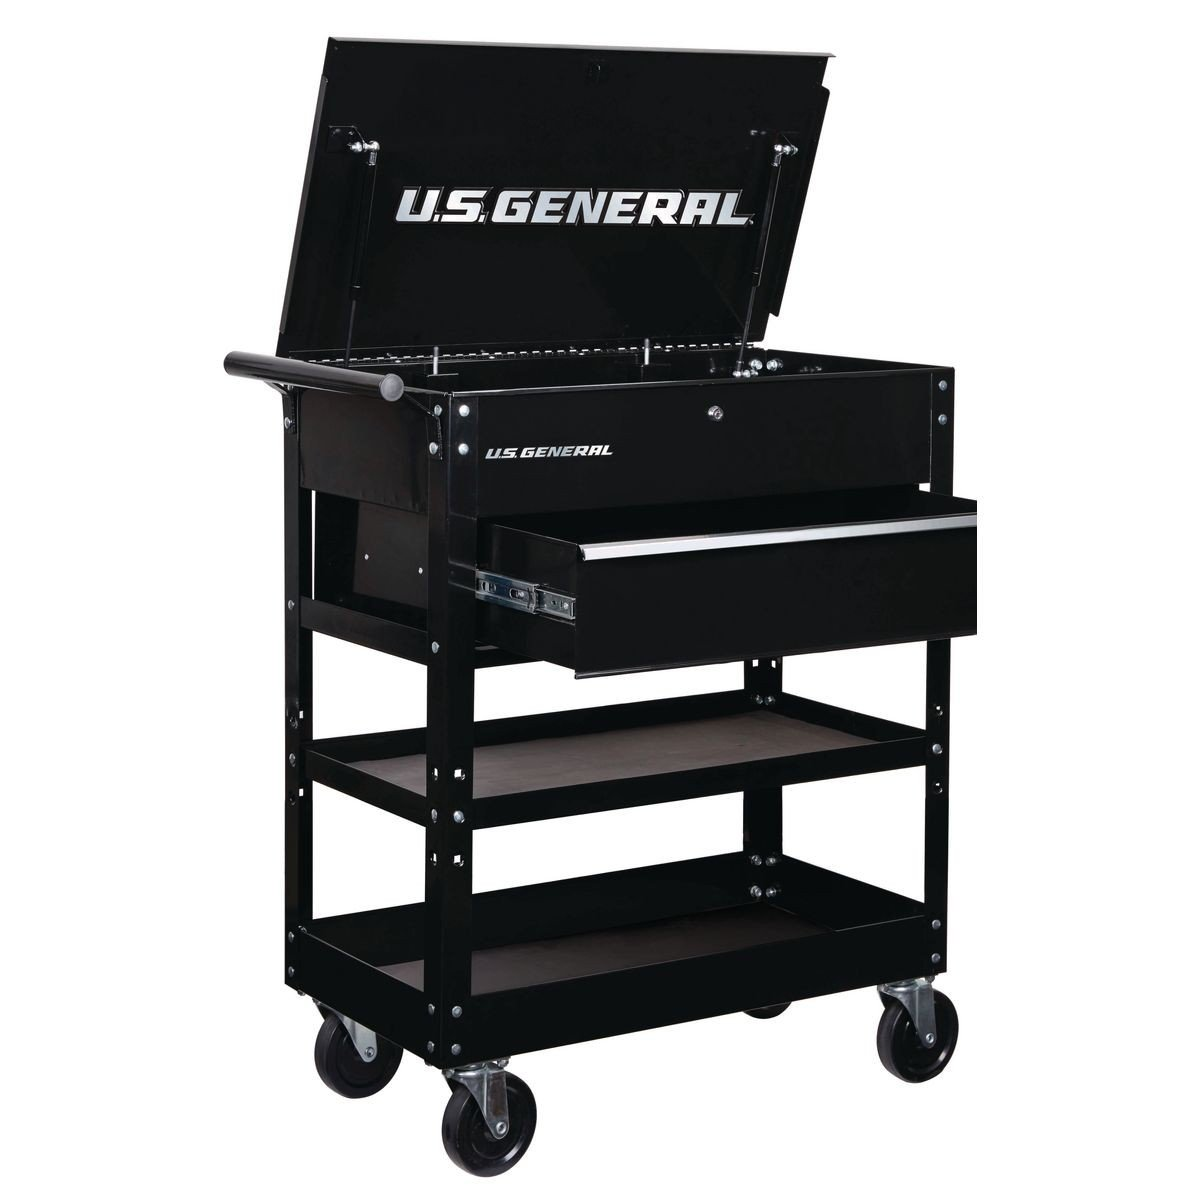 26 in. Deep Drawer Bulk Storage Tech Mechanics Tool Cart Cabinet